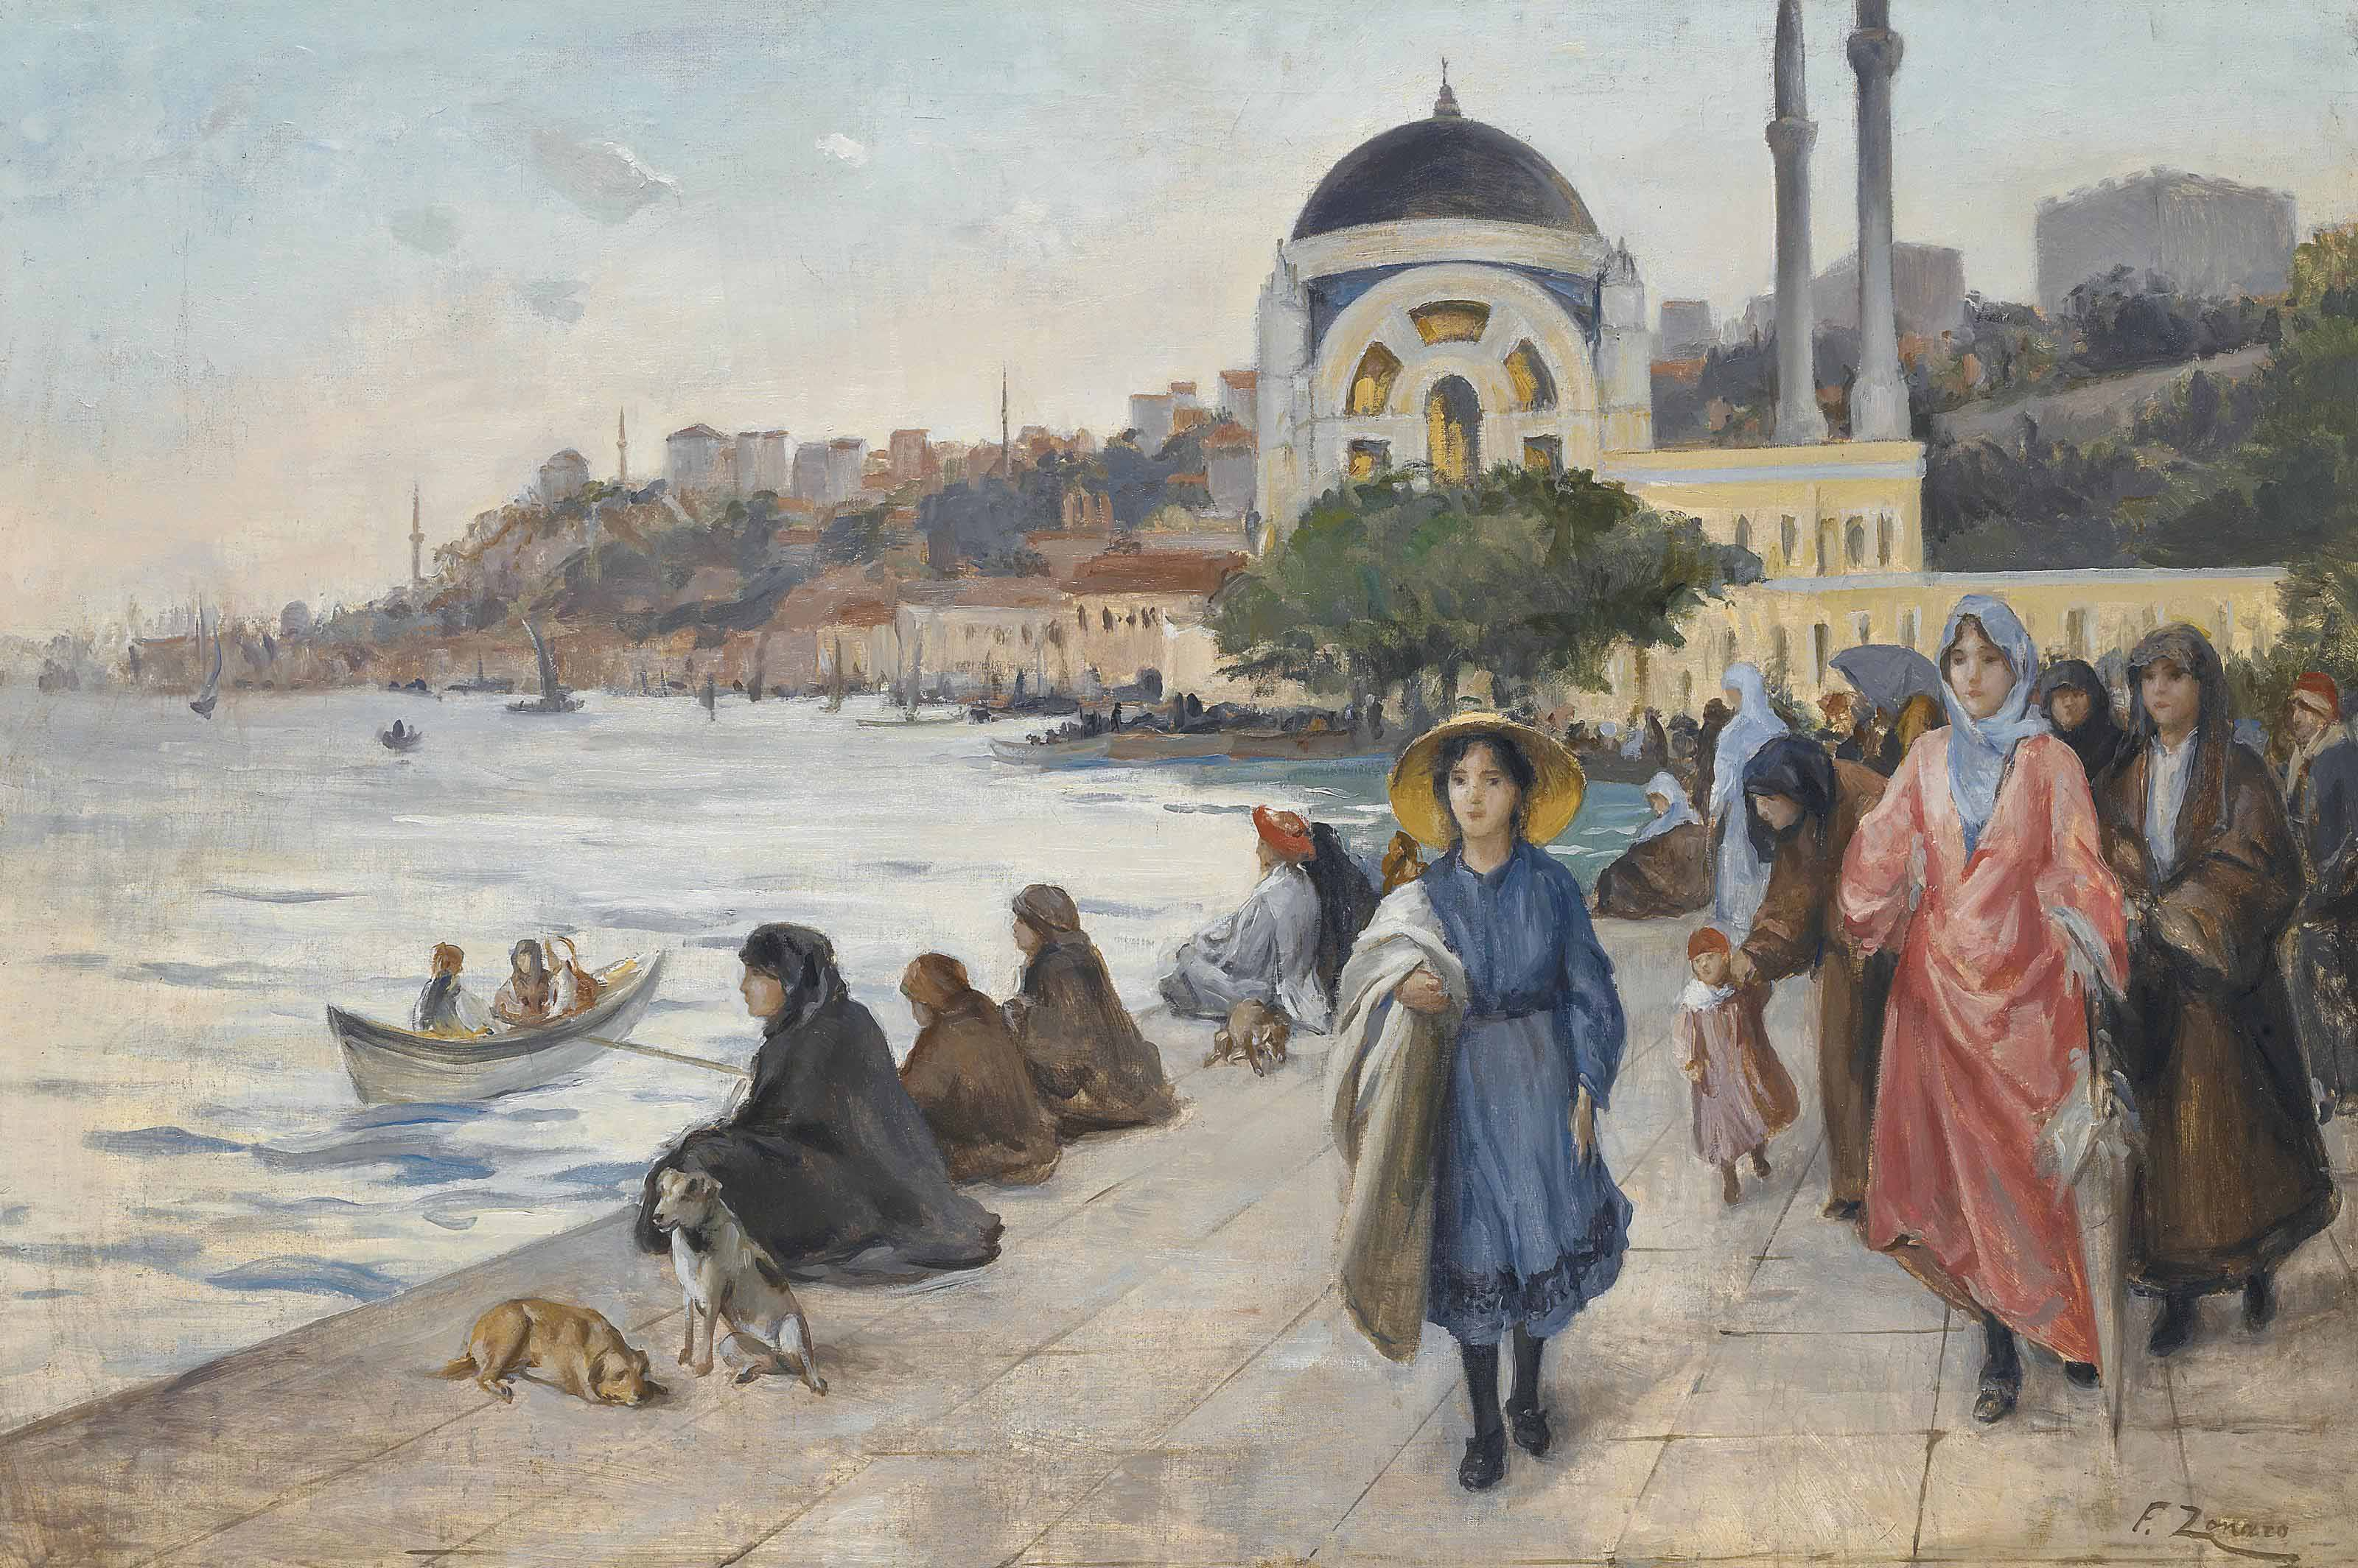 Mafalda on the Banks of the Bosphorus, the Dolmabahçe Mosque in the background